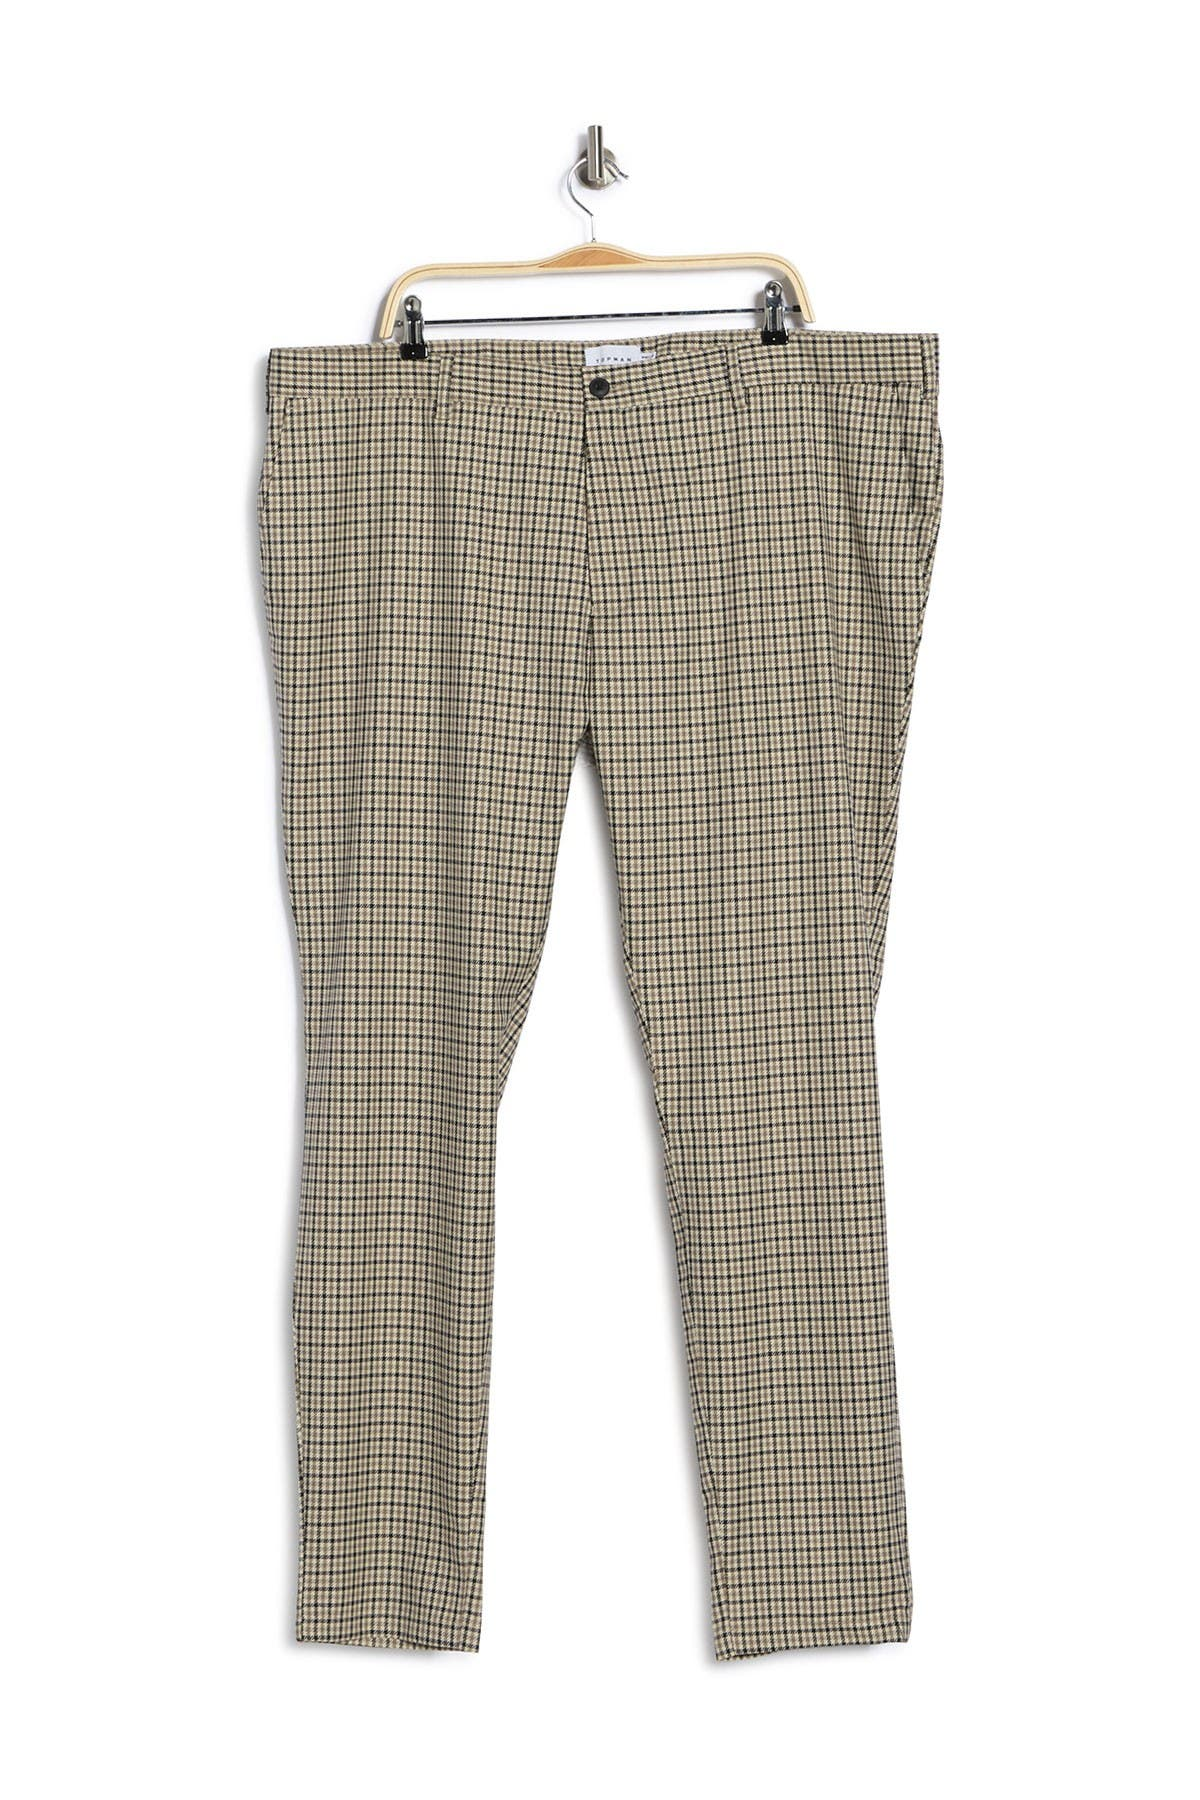 Image of TOPMAN Check Straight Leg Button Trousers